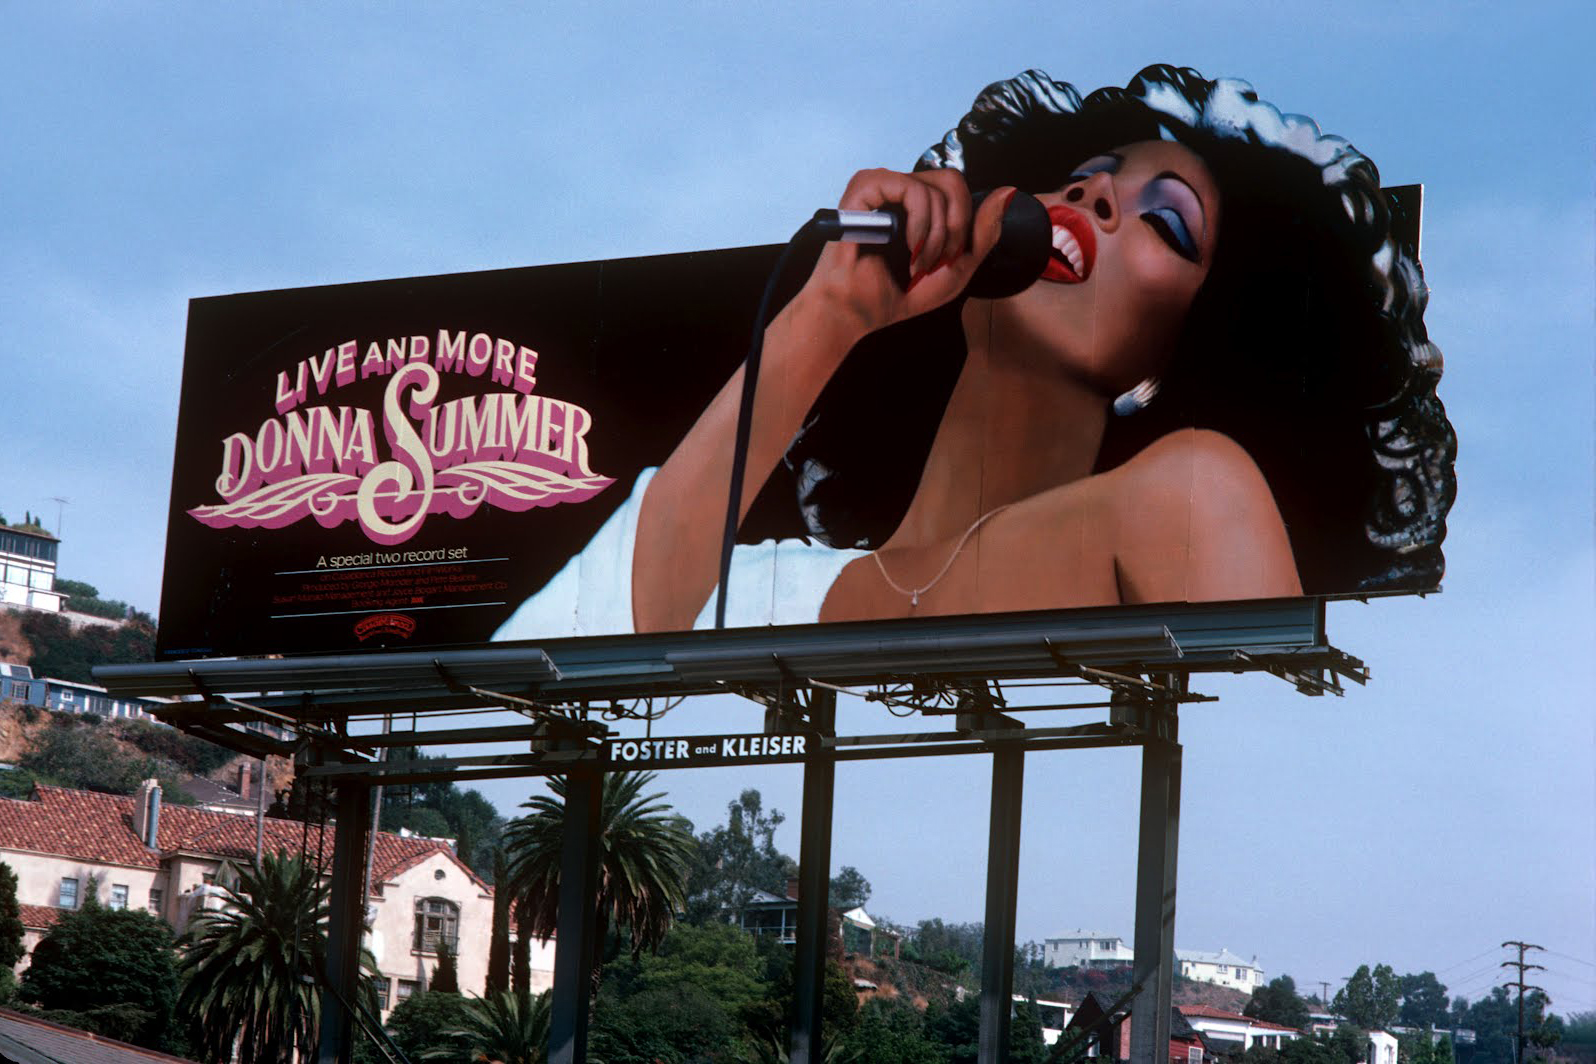 Donna Summer's Live and More, 1978 (Casablanca Records), art direction by Gribbit!, Henry Vizcarra and Stephen Lume, photo by Francesco Scavullo.